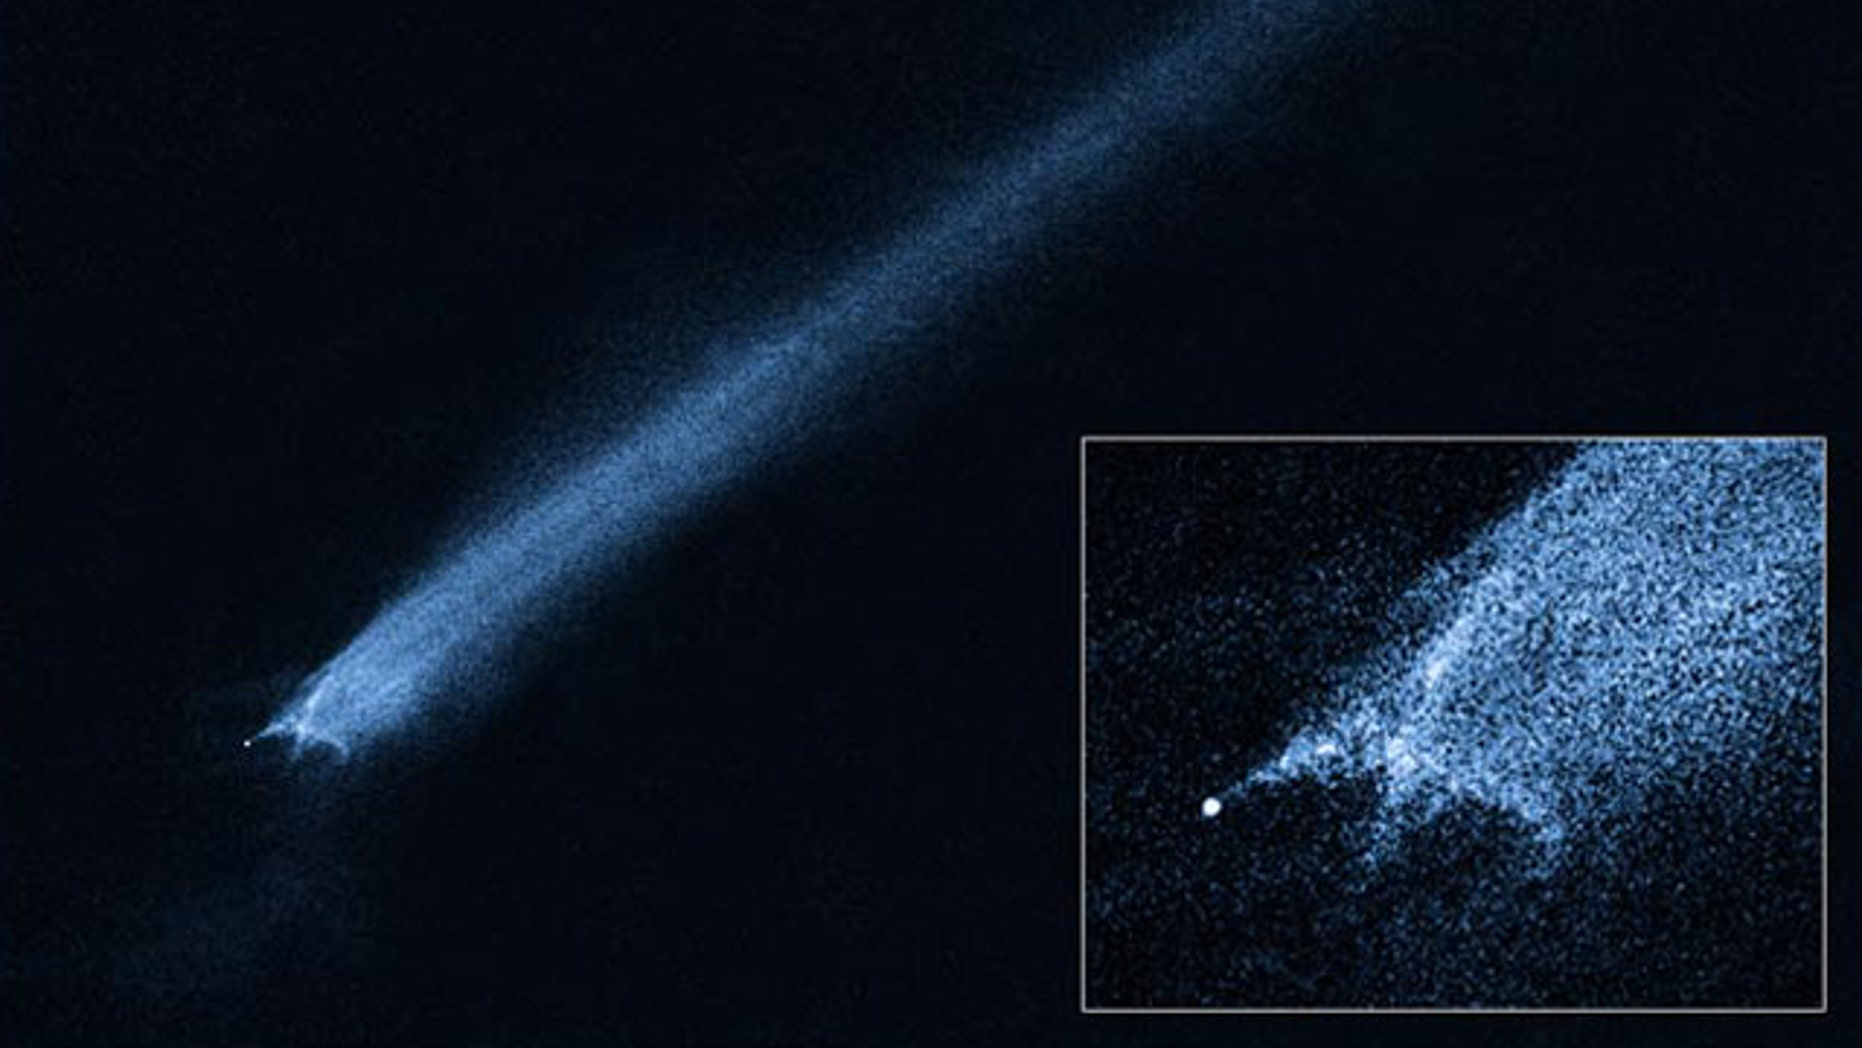 A Hubble Space Telescope picture of a comet-like object called P/2010 A2 shows a bizarre X-pattern of filamentary structures near the point-like nucleus of the object and trailing streamers of dust. Scientists think the object is the remnant of an asteroid collision.